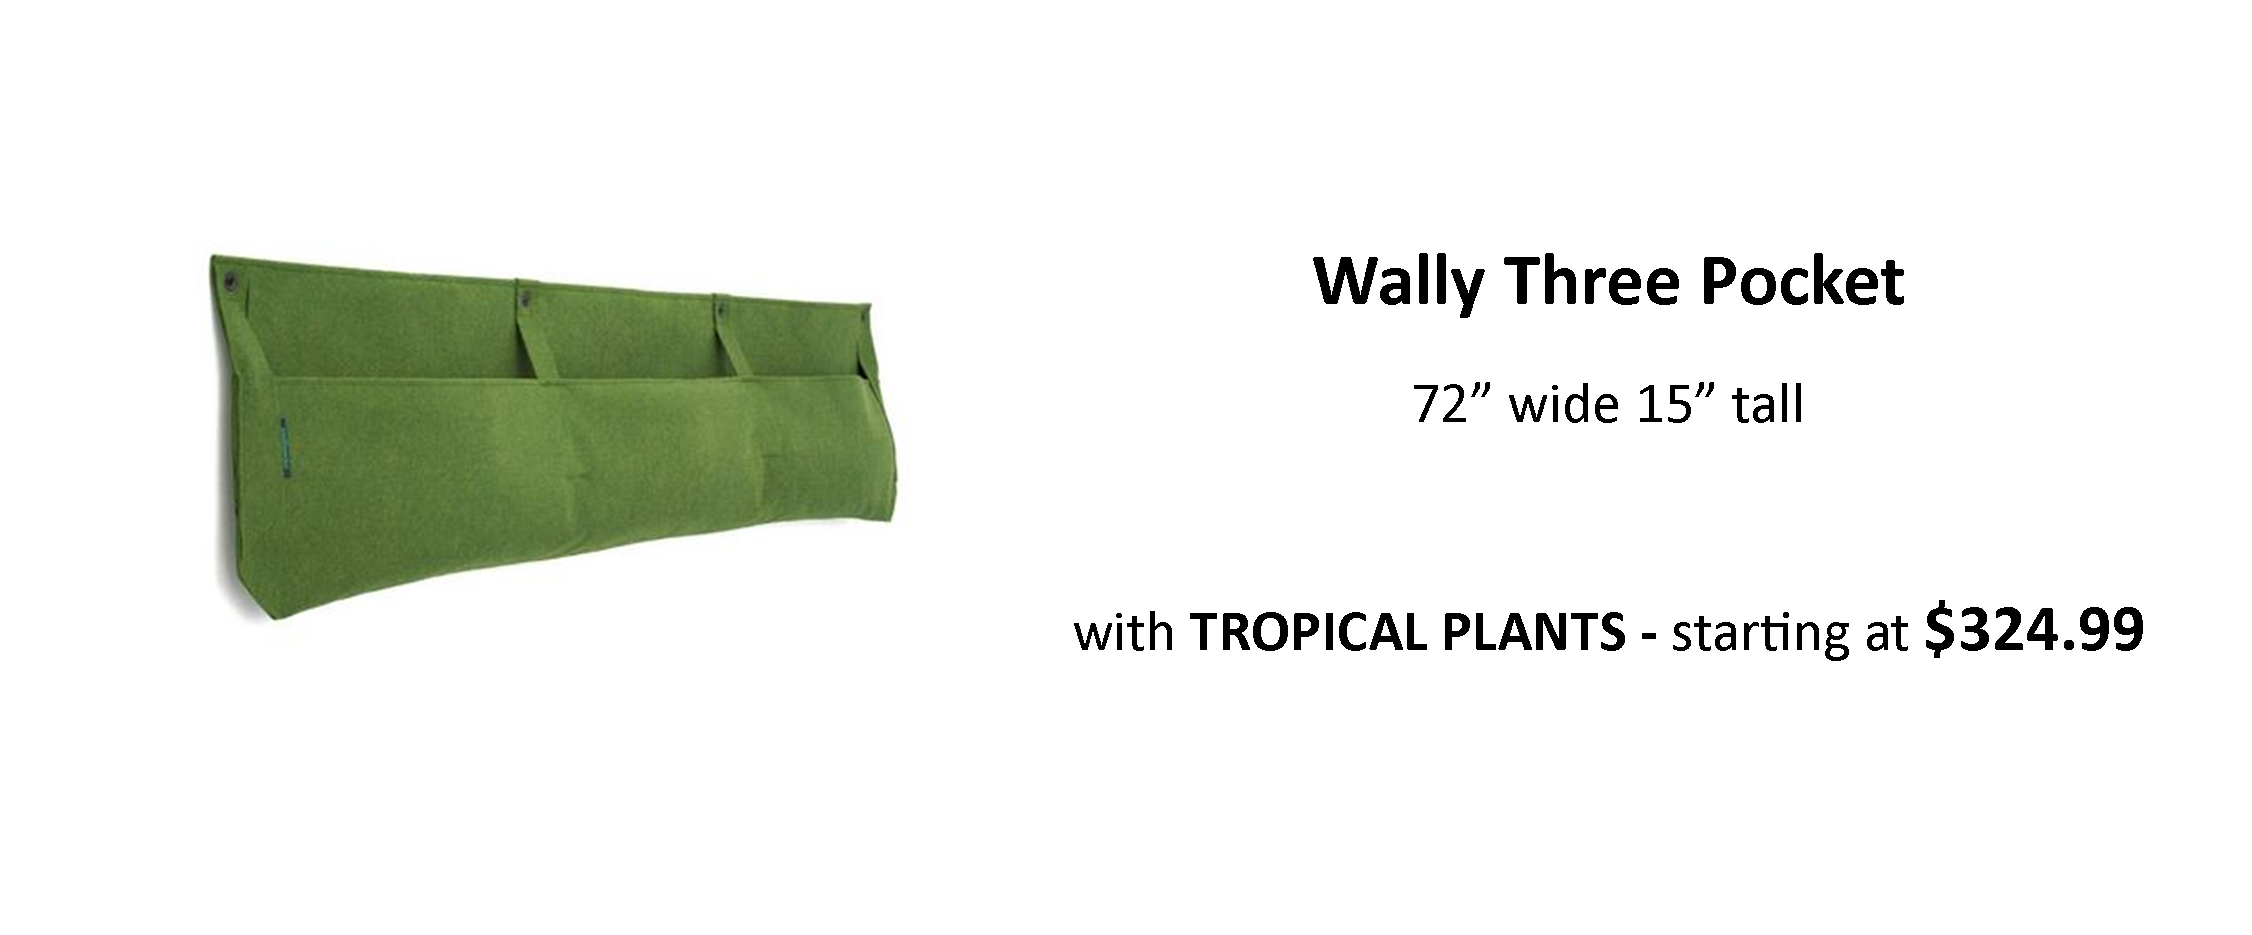 Vertical Garden Planter Woolly Pocket Wally Three Pre Planted with Tropical Plants for Indoor or Outdoor Use